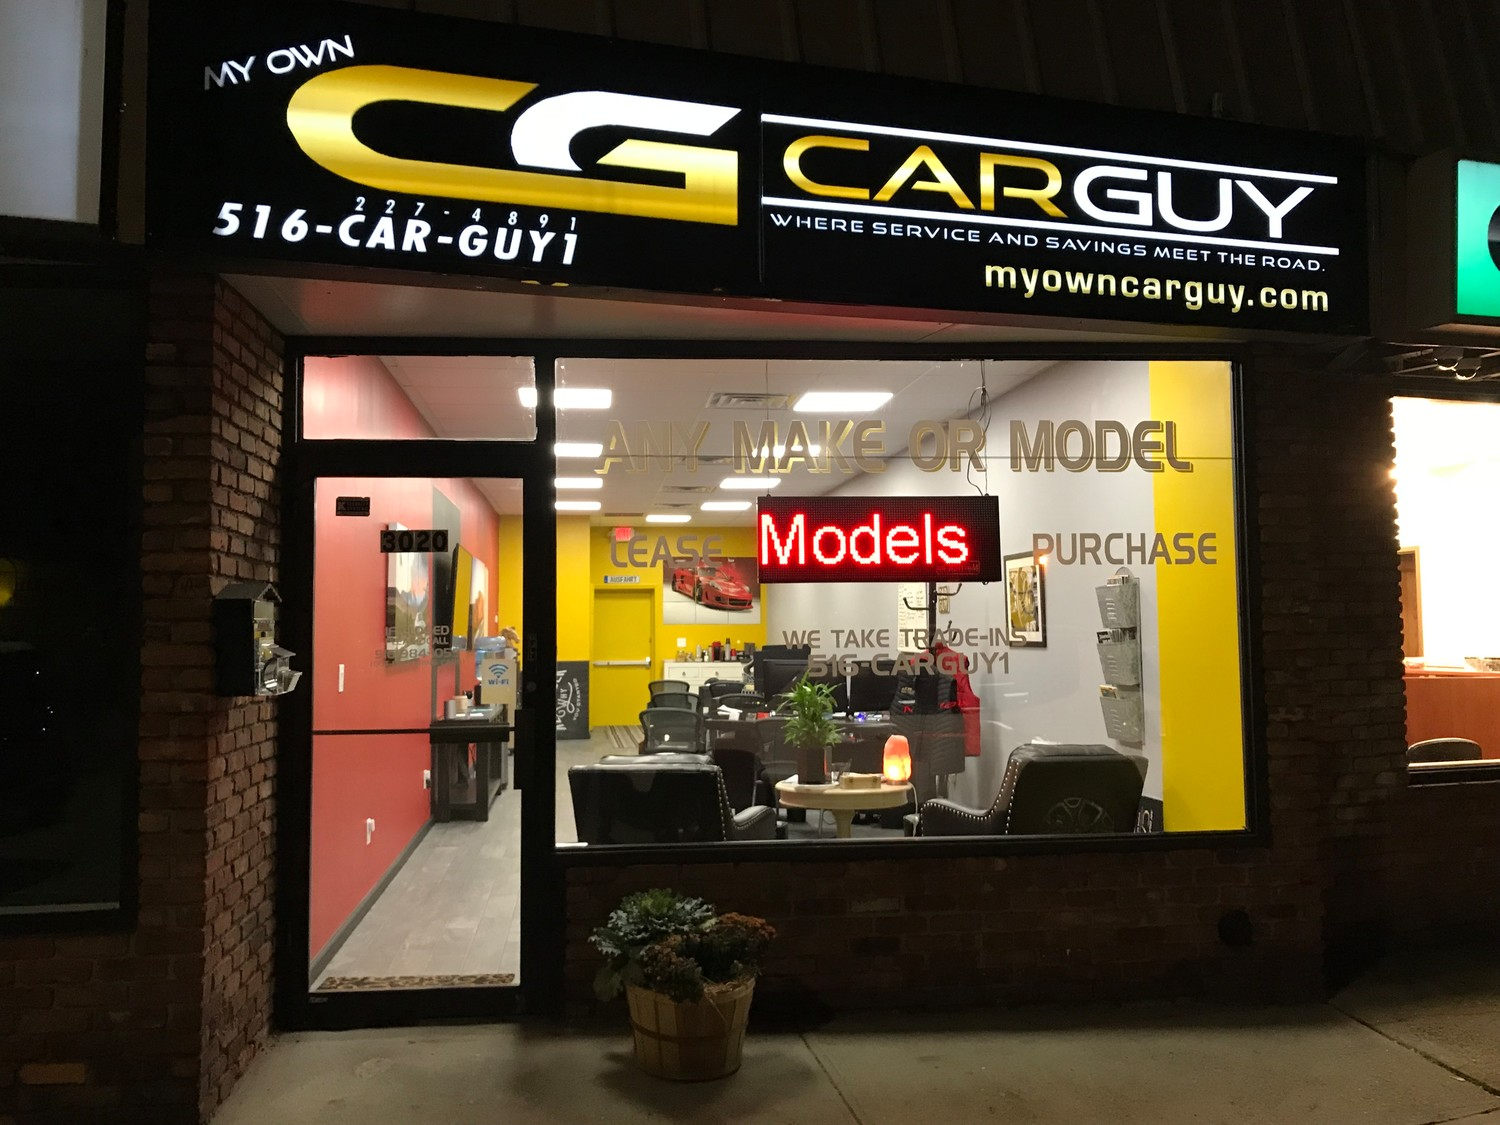 My Own Car Guy opened in Wantagh in June 2017.